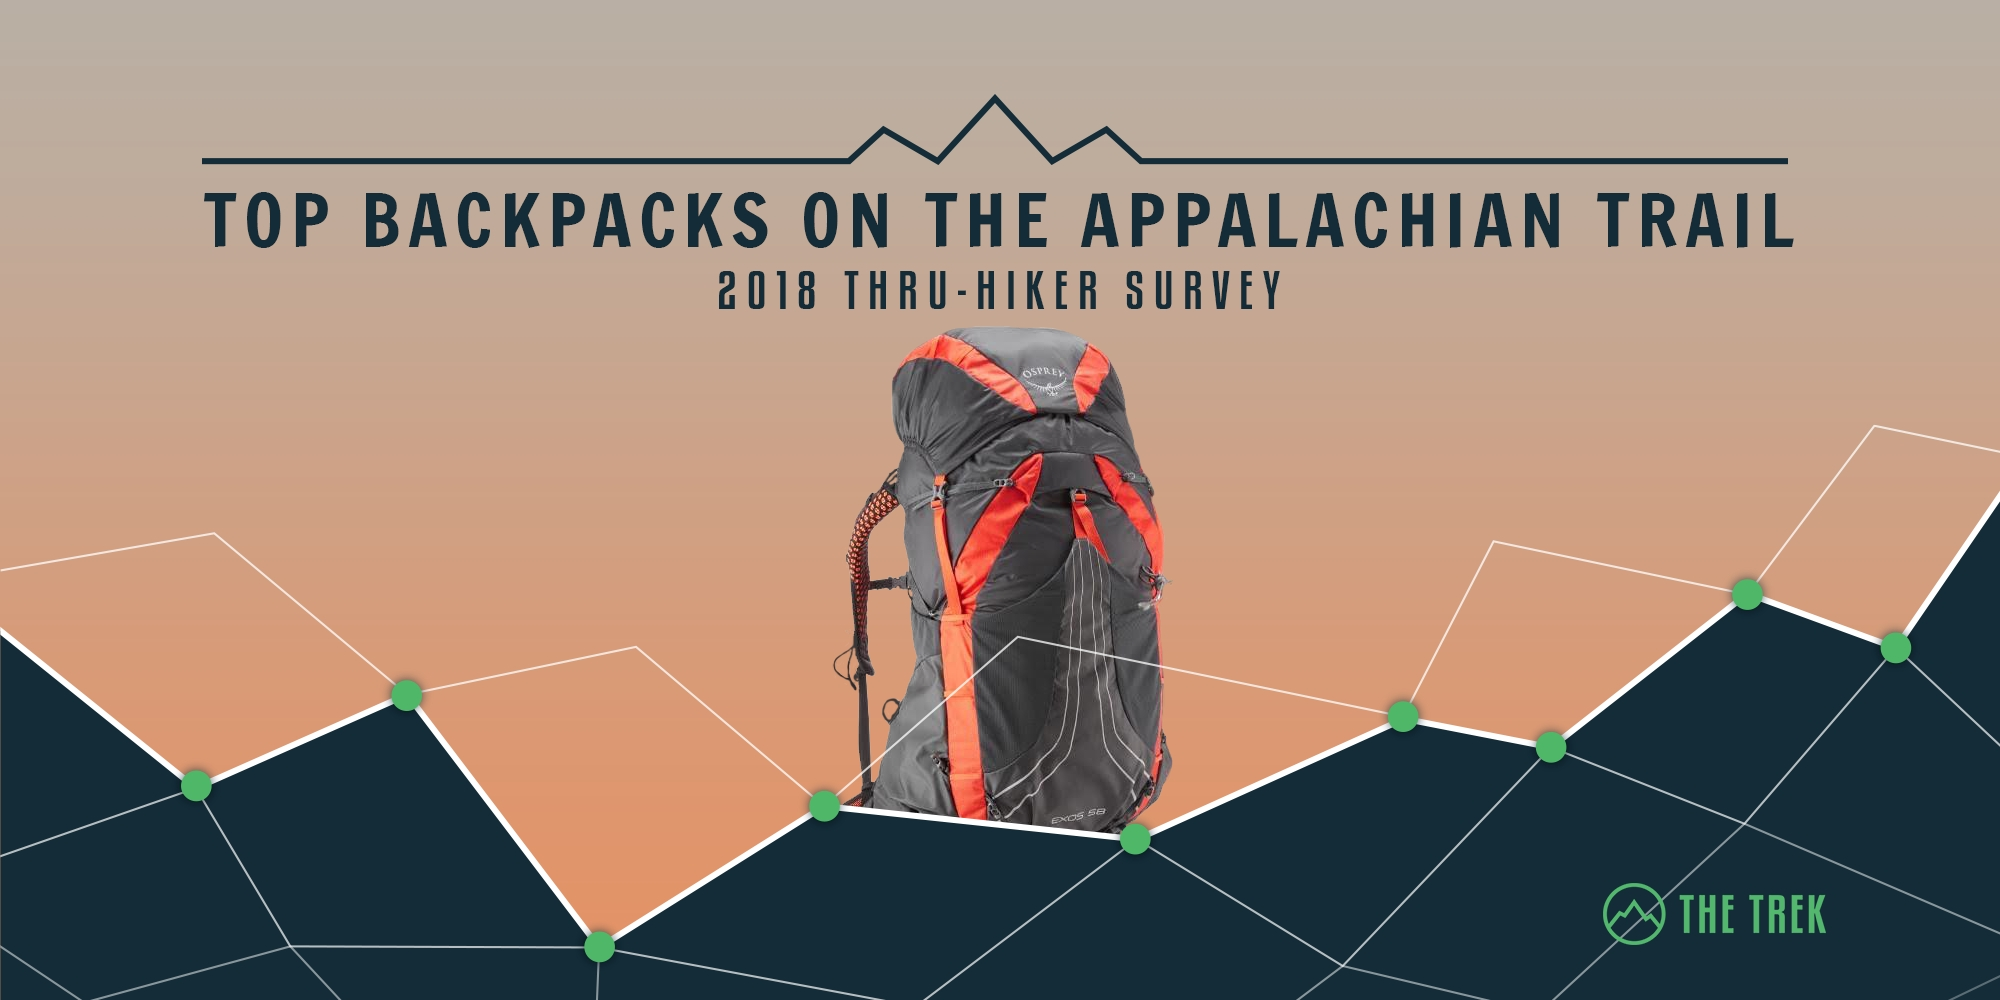 The Top Backpacks on the Appalachian Trail: 2018 Thru-Hiker Survey